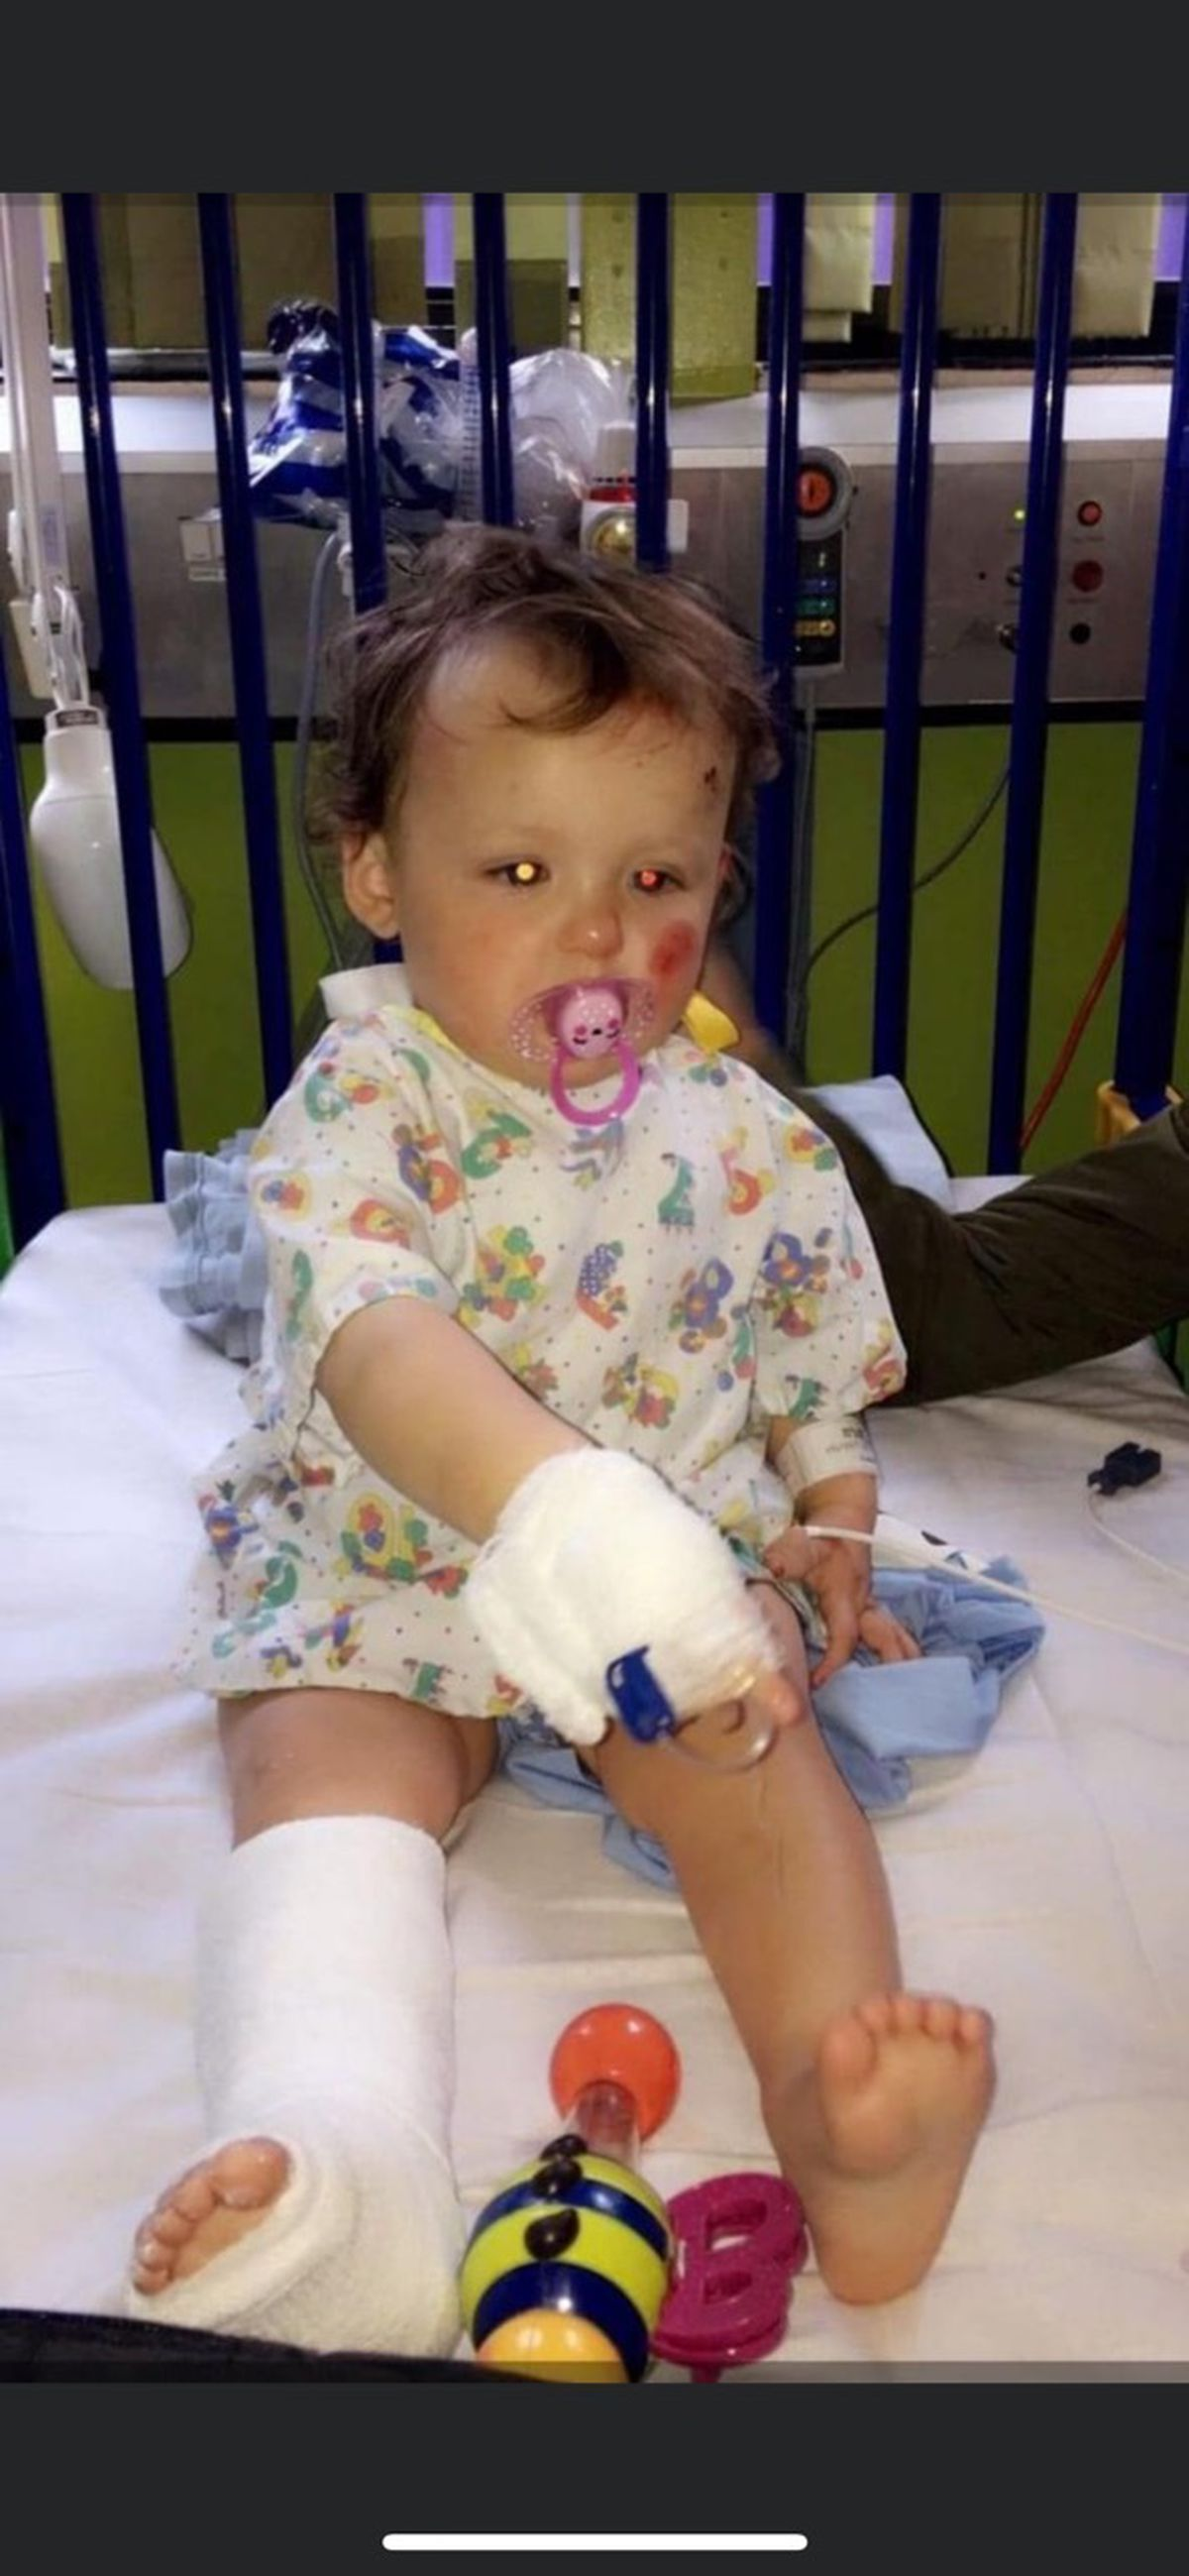 Harper Whittle was less than two years old when she suffered fractures and bruising in the incident